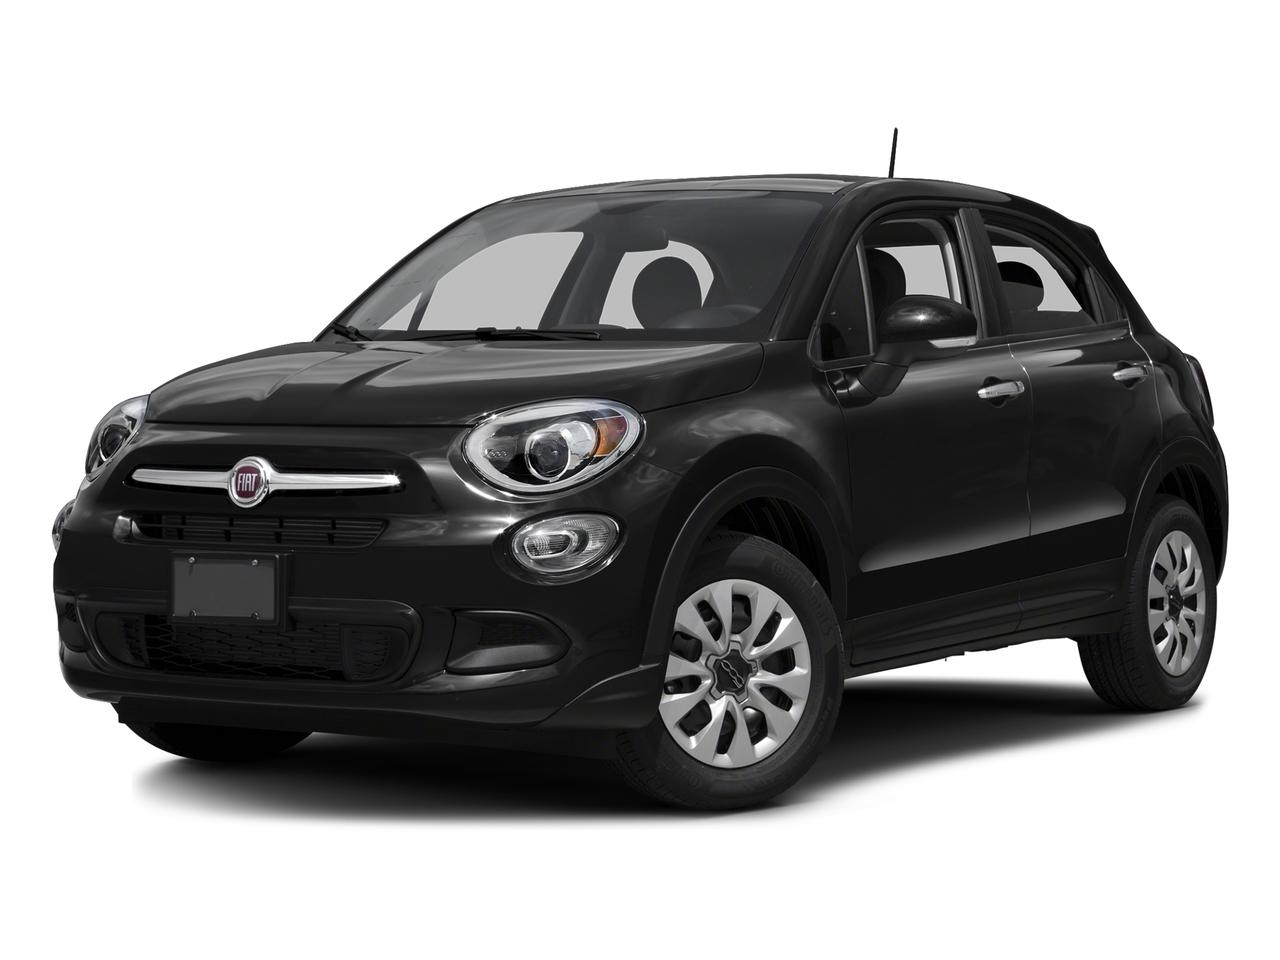 2016 FIAT 500X Vehicle Photo in Kansas City, MO 64114